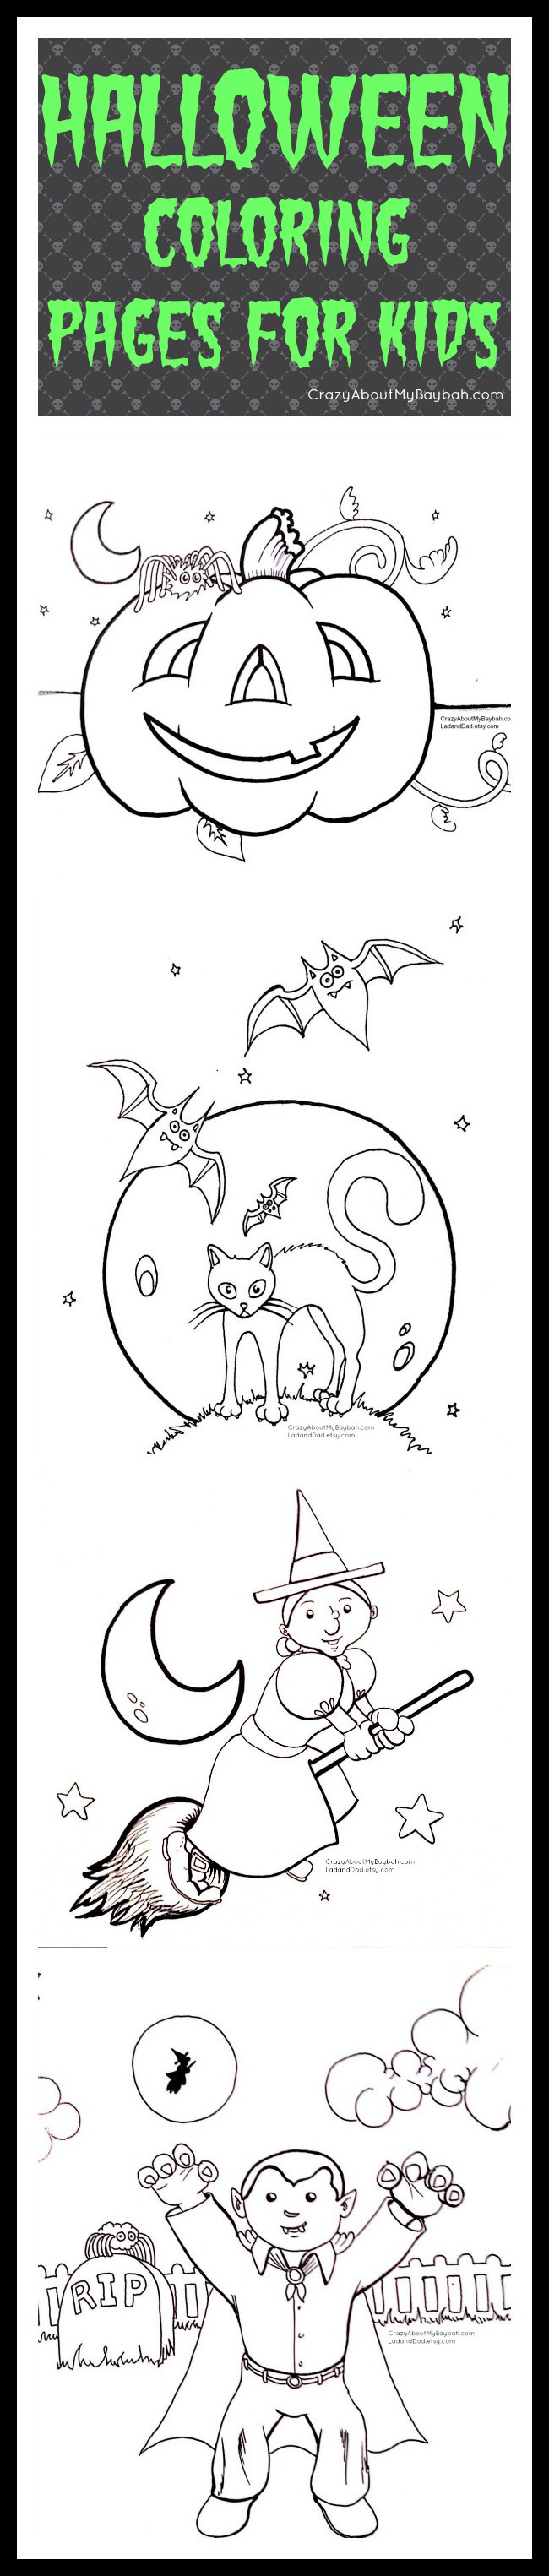 Free Printable Halloween Coloring Pages for Kids | Boys Halloween ...